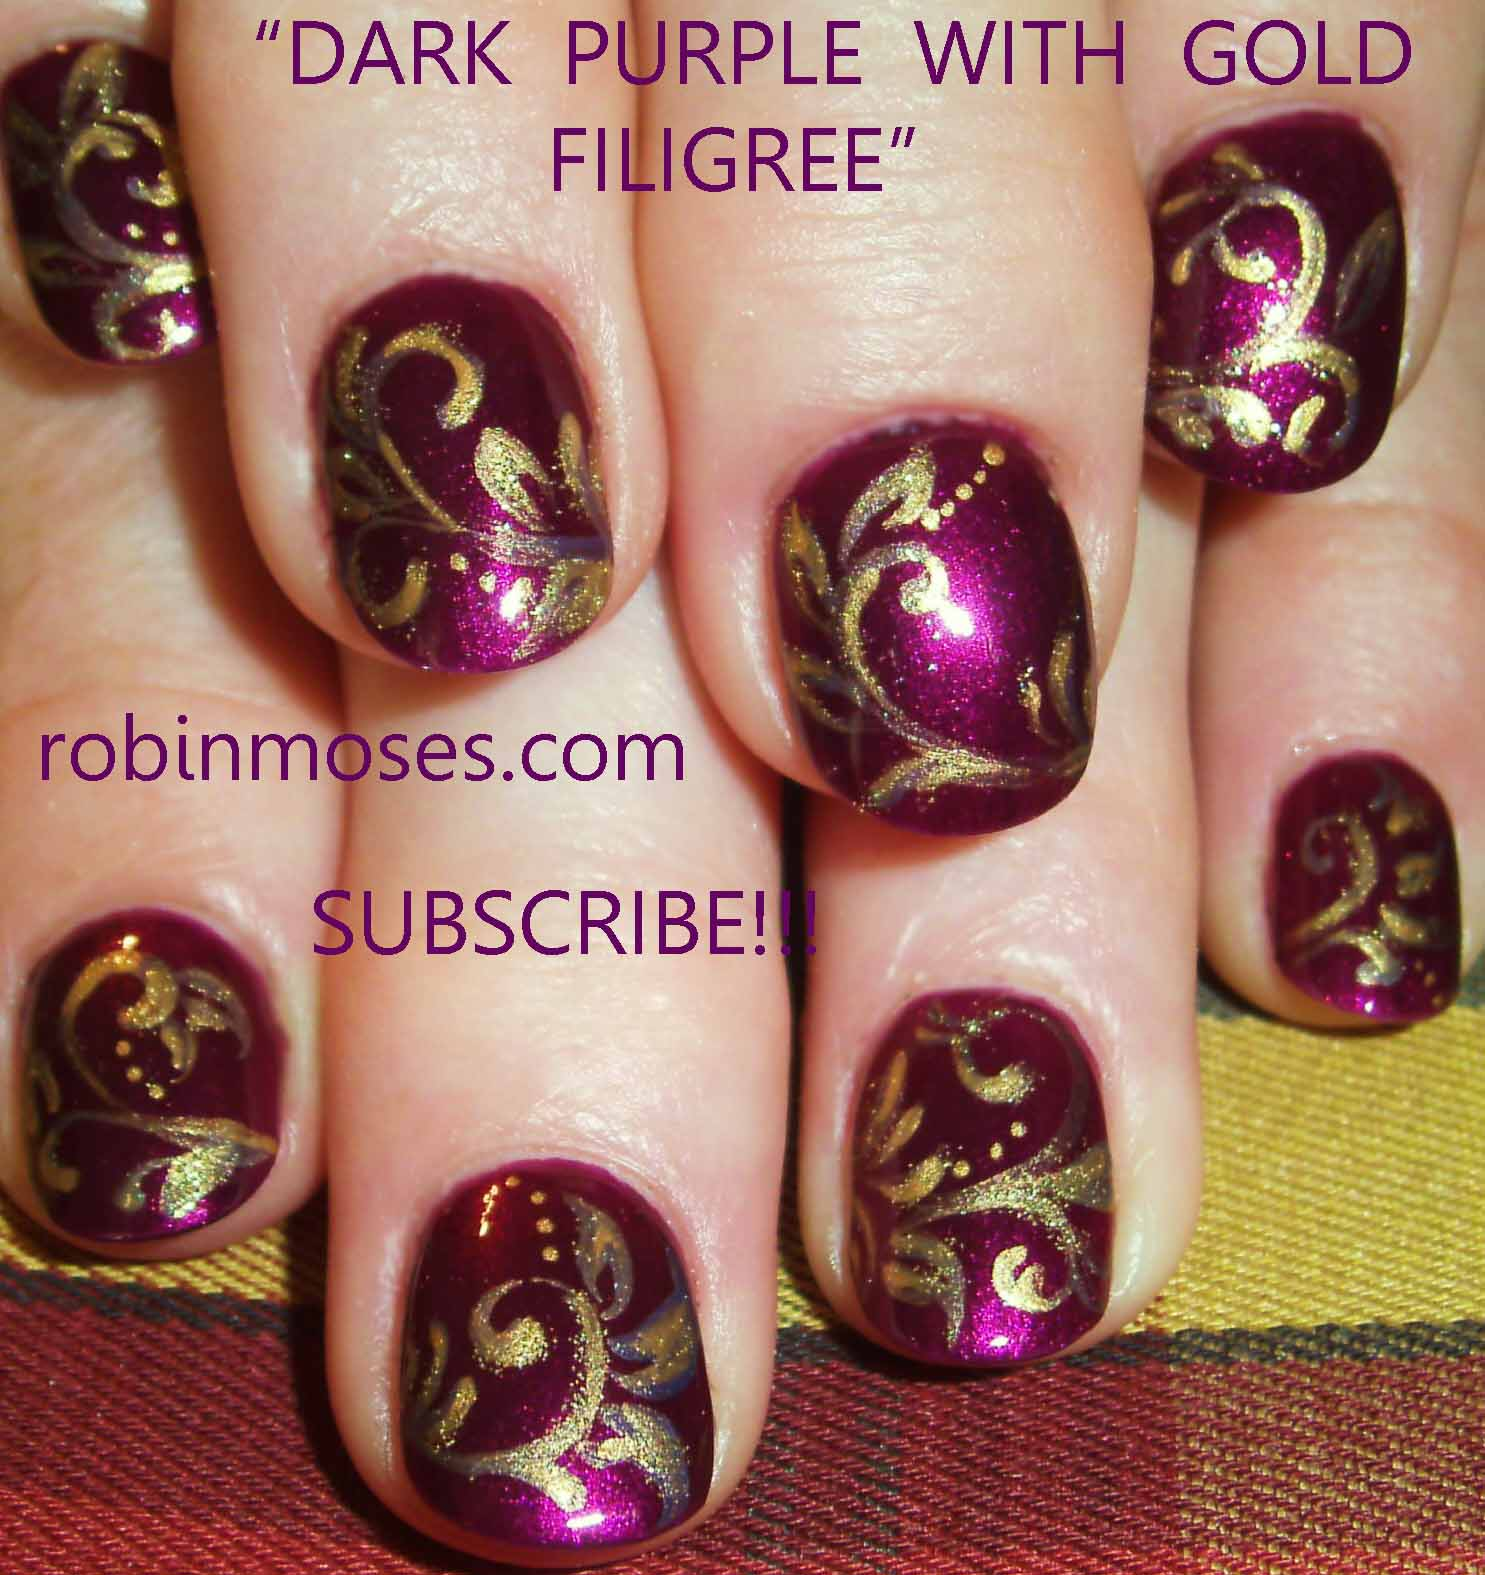 The Captivating Dark purple nail designs Image